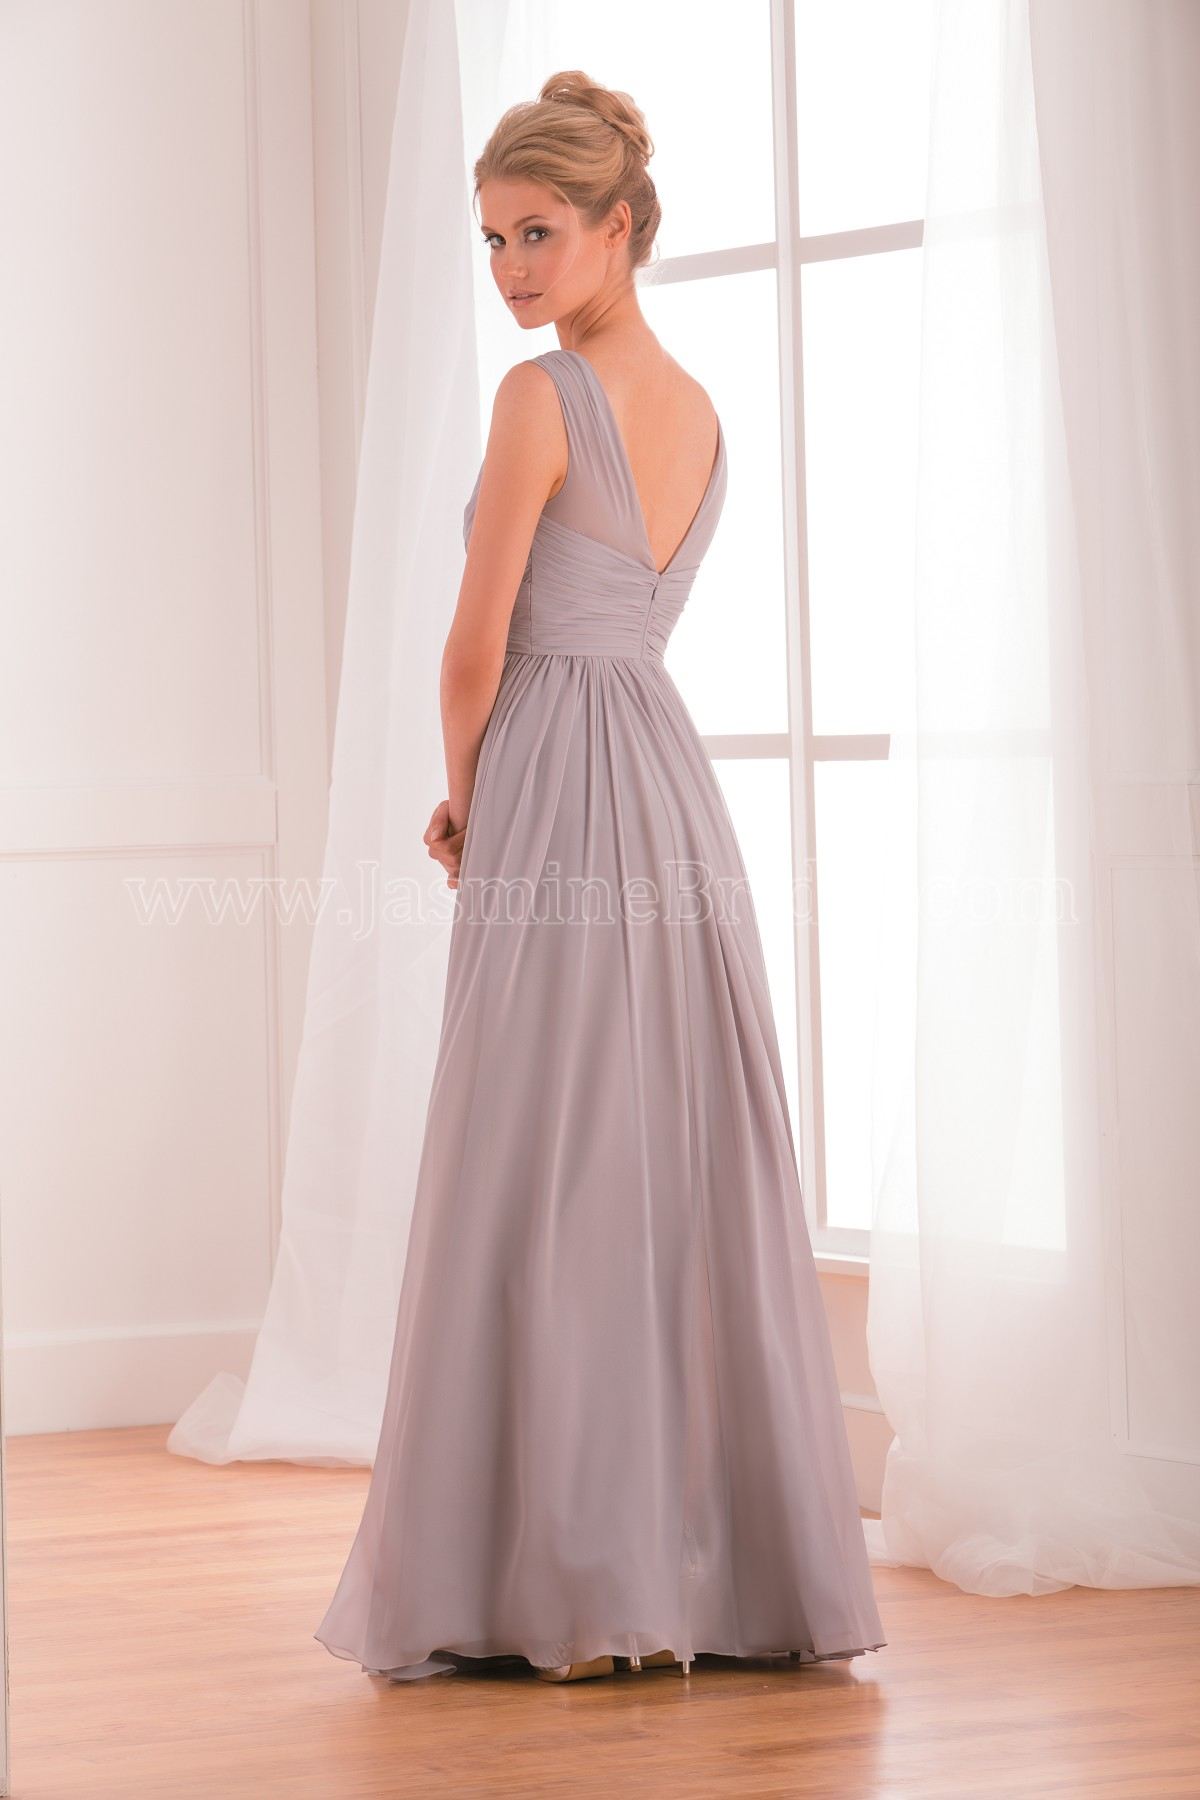 bridesmaid-dresses-B173002-B